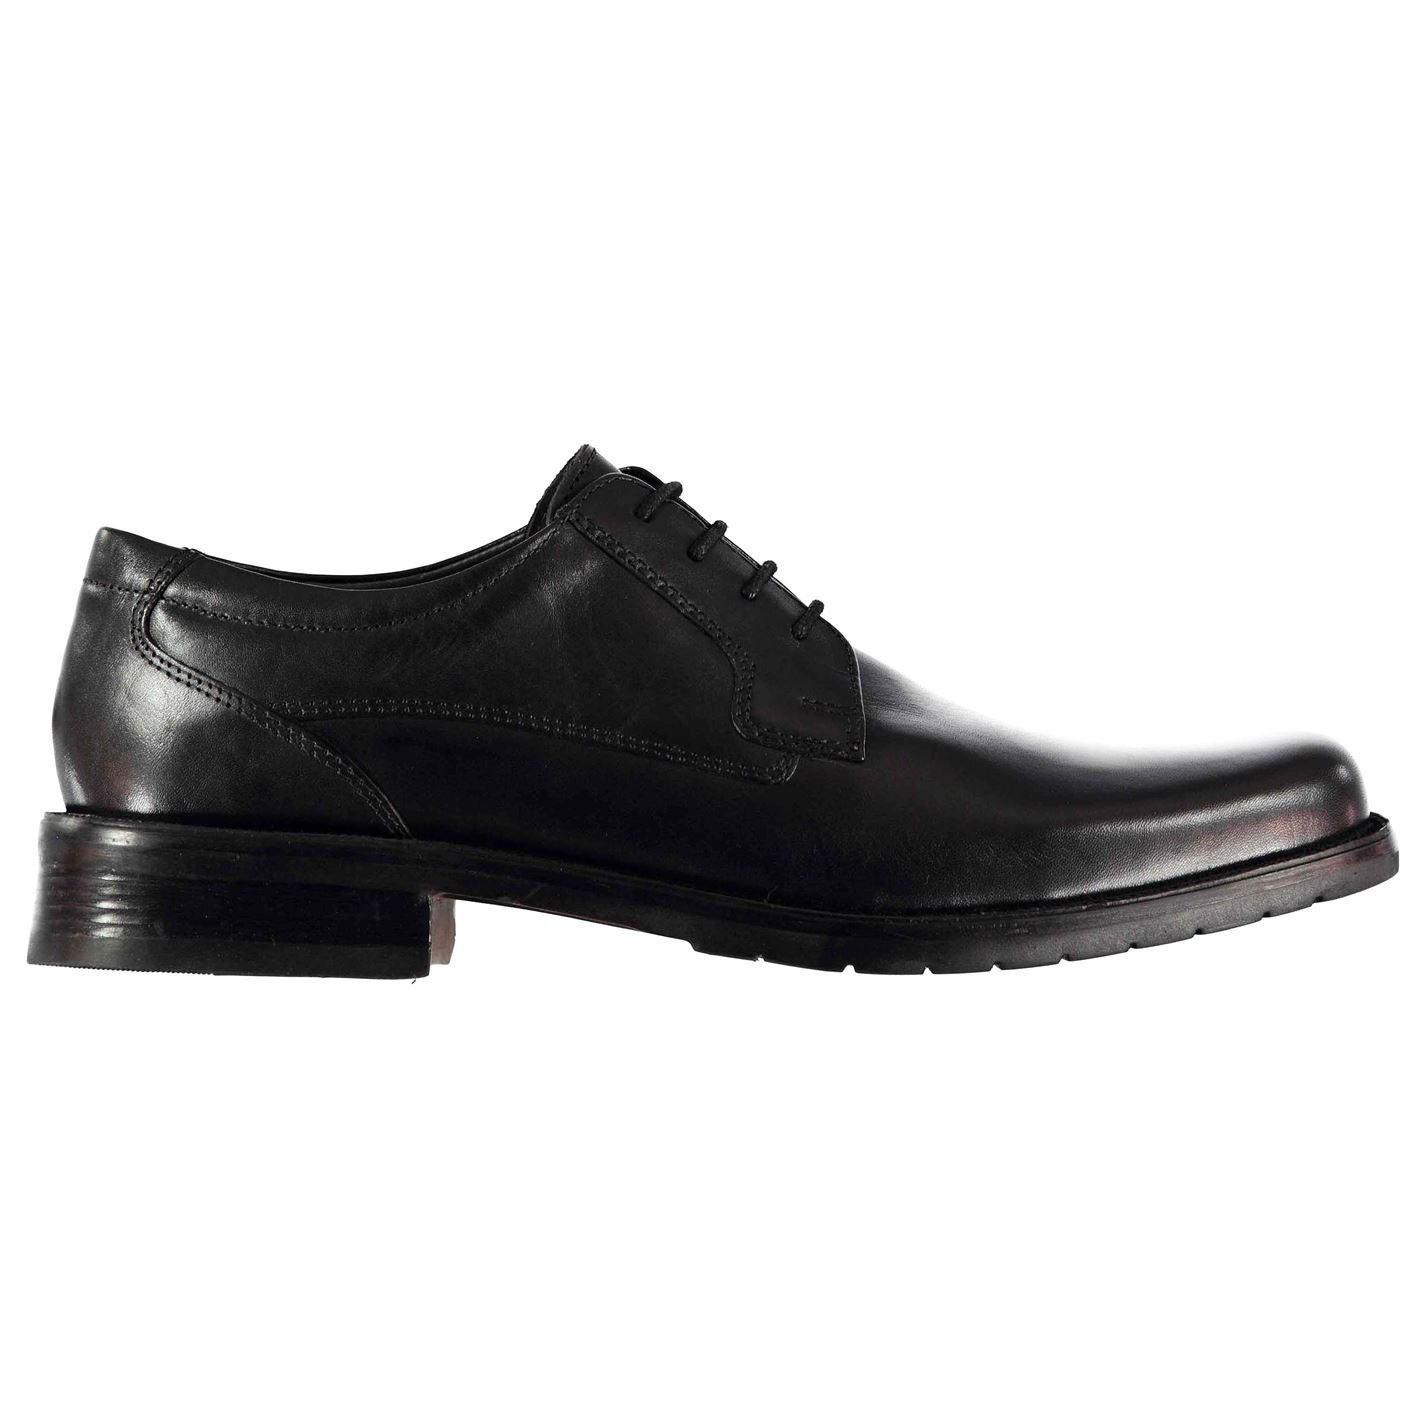 Kangol Mens Glinton Lace up Shoes Derby Slight Heel Formal